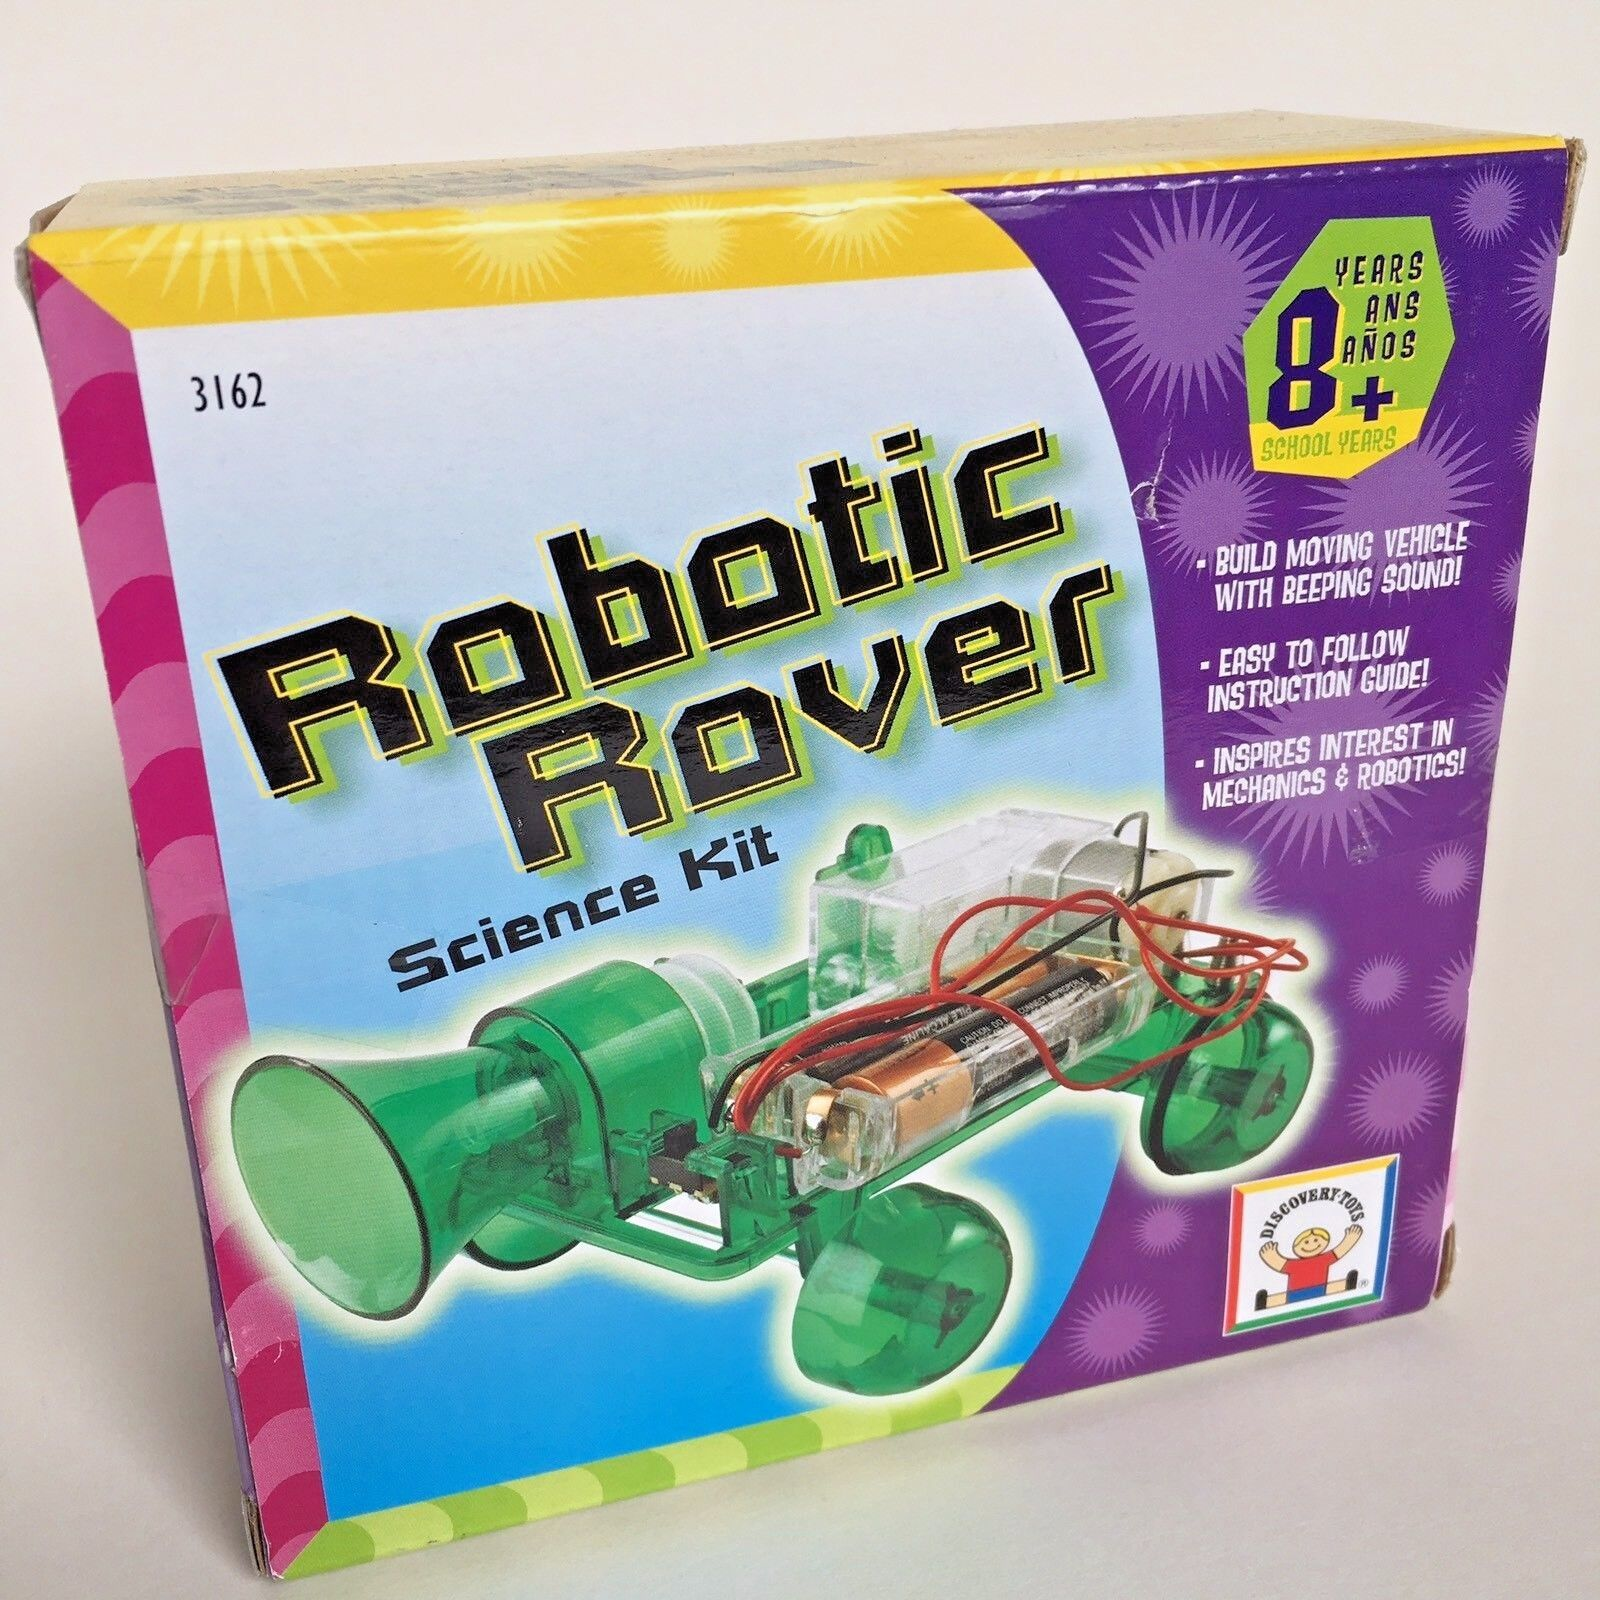 Rare Discovery Toys Robotic Rover Science Kit, Educational Learning Toy